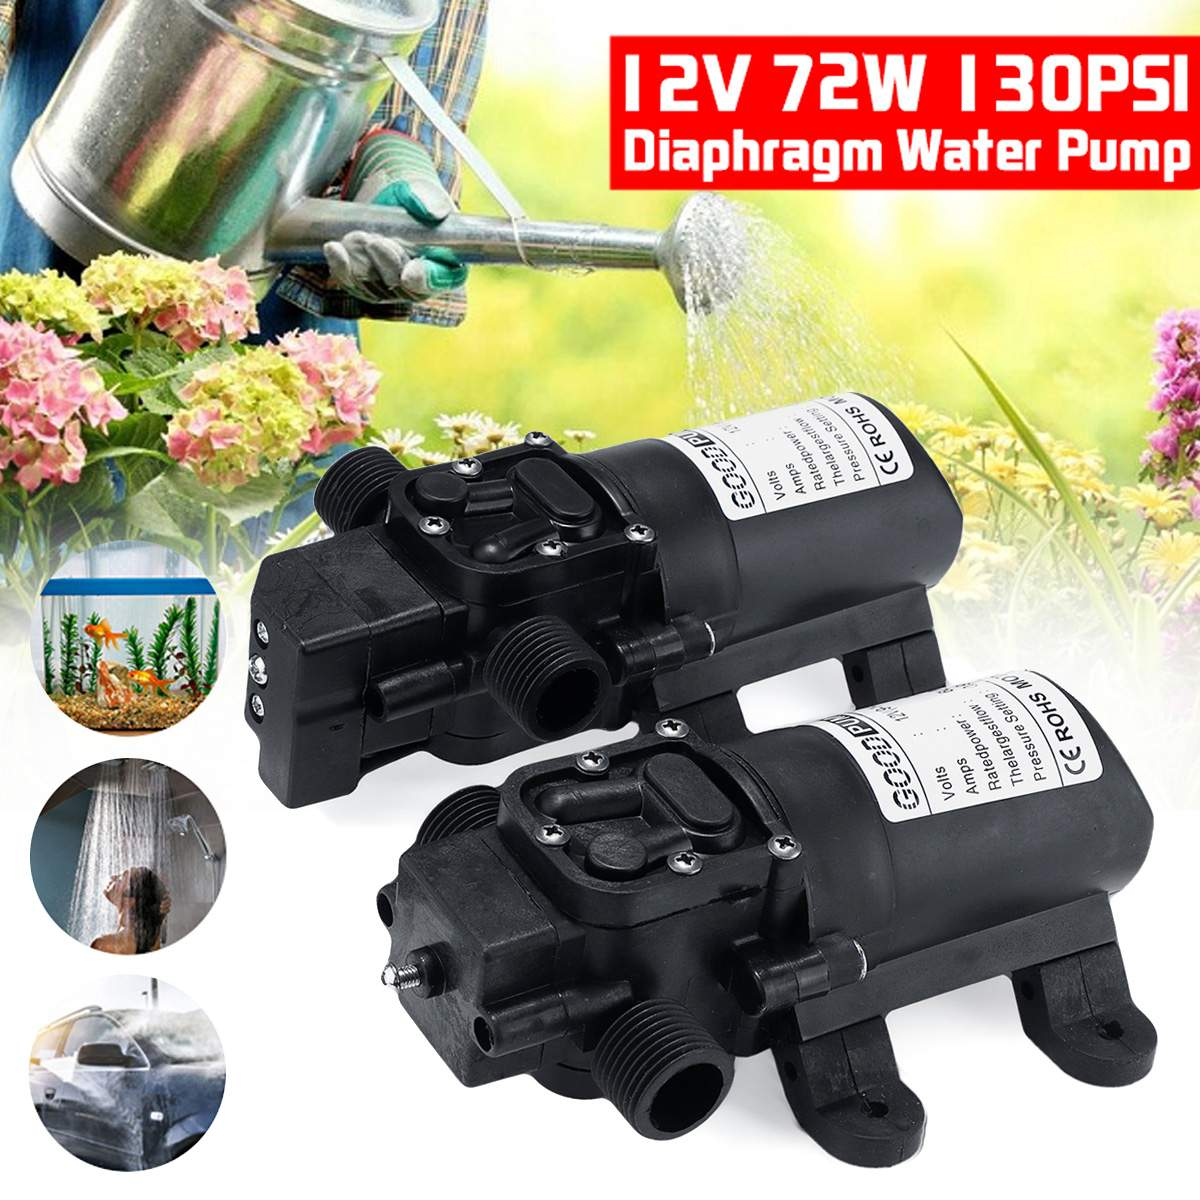 DC 12V 130PSI 72W Electric Water Pump Micro High Pressure Diaphragm Water Pump Sprayer fpr Car Wash 12 V Home garden image